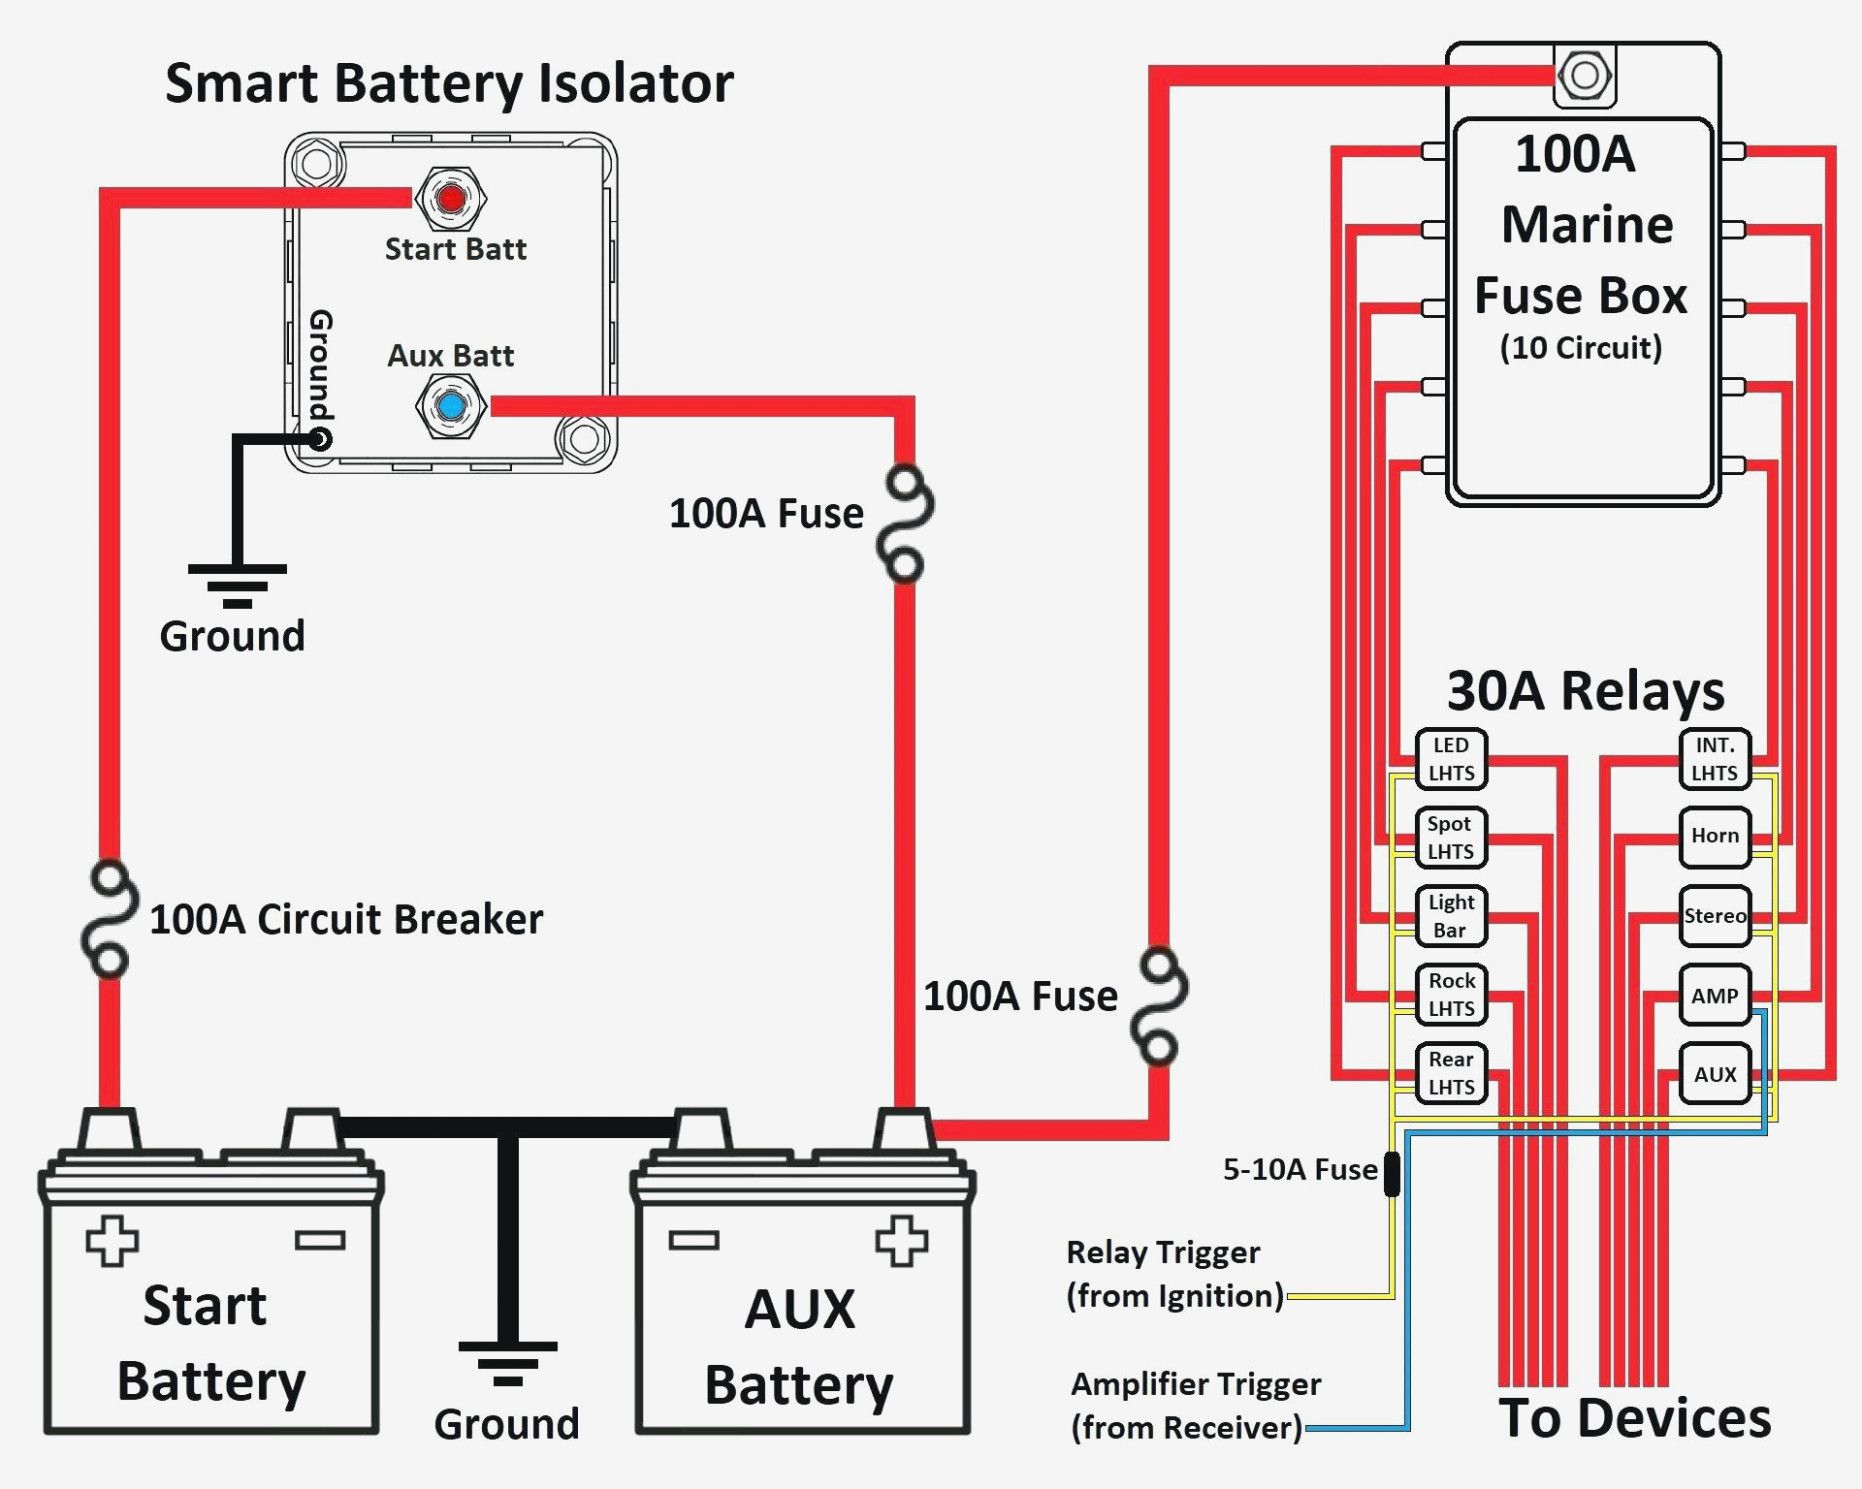 hight resolution of boat amp wiring diagram wiring diagram data pioneer amp wiring diagram boat amp wiring diagram